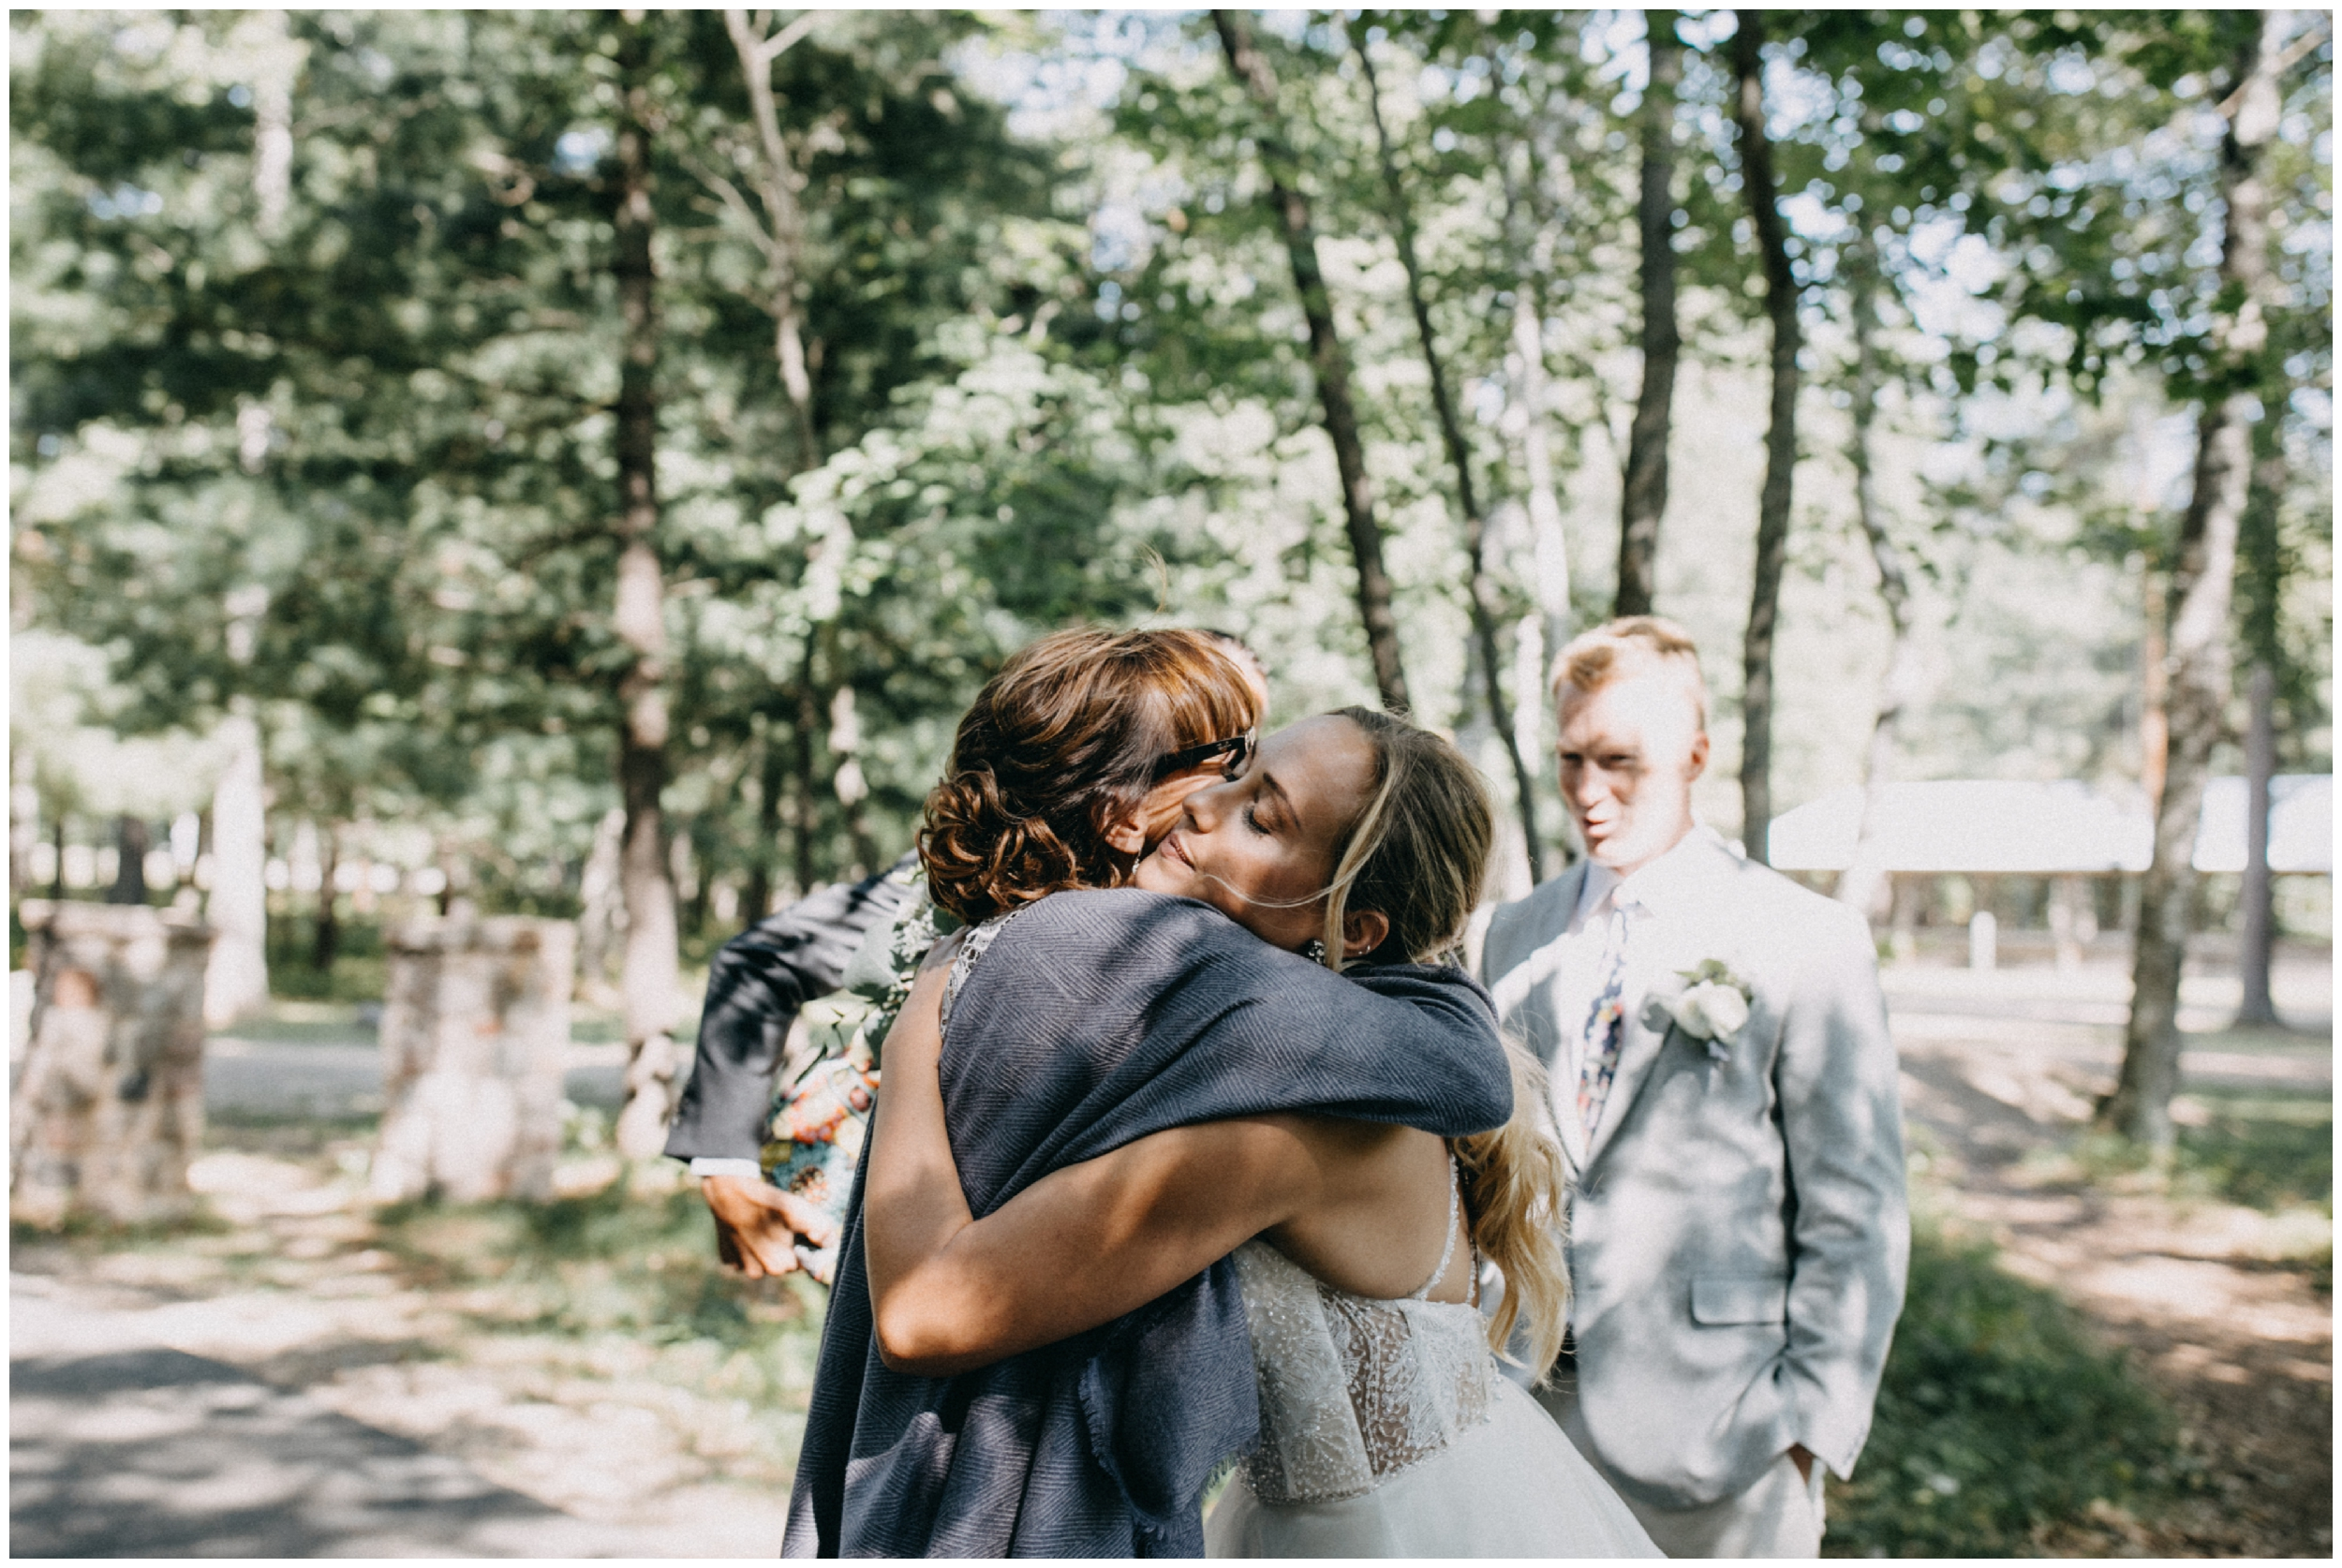 Emotional and natural family photography at Camp Foley wedding